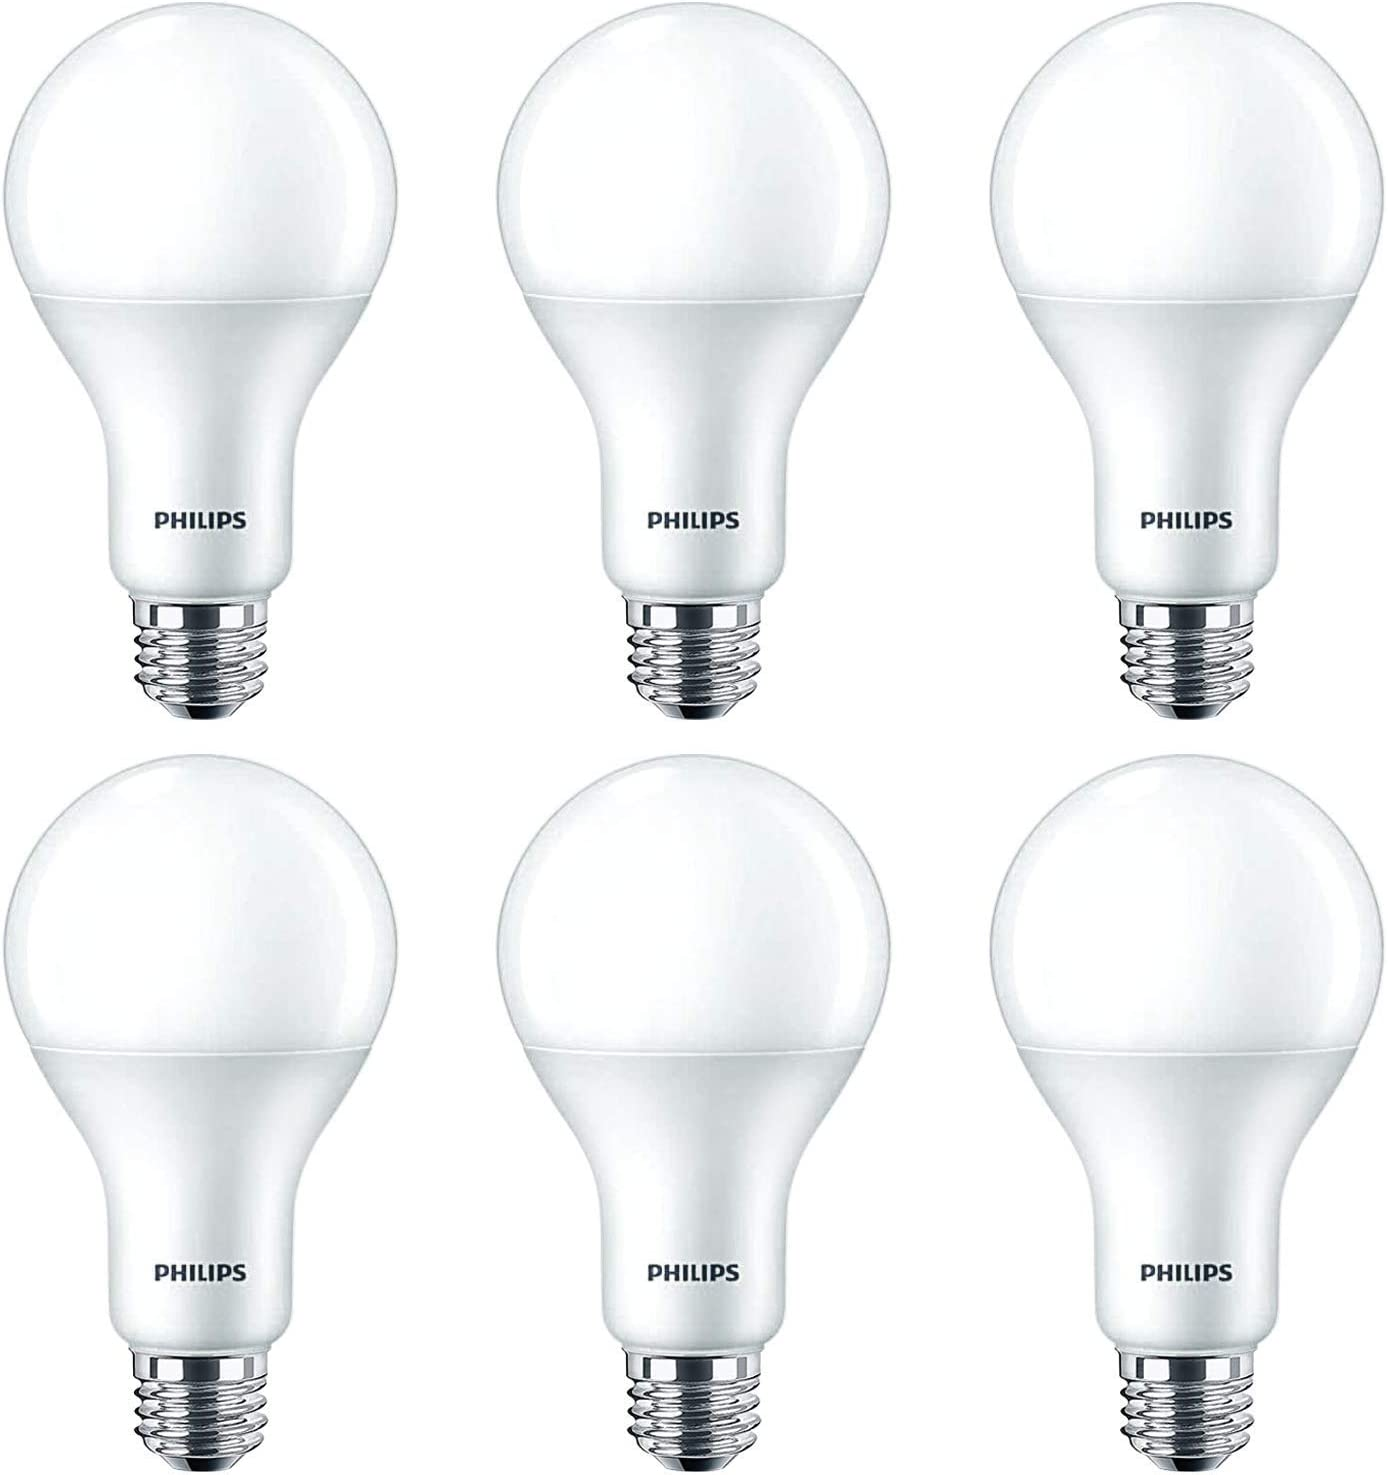 Philips LED Dimmable A21 Overseas parallel import regular item Light Bulb Glow Effect Warm New products world's highest quality popular with 1600-L